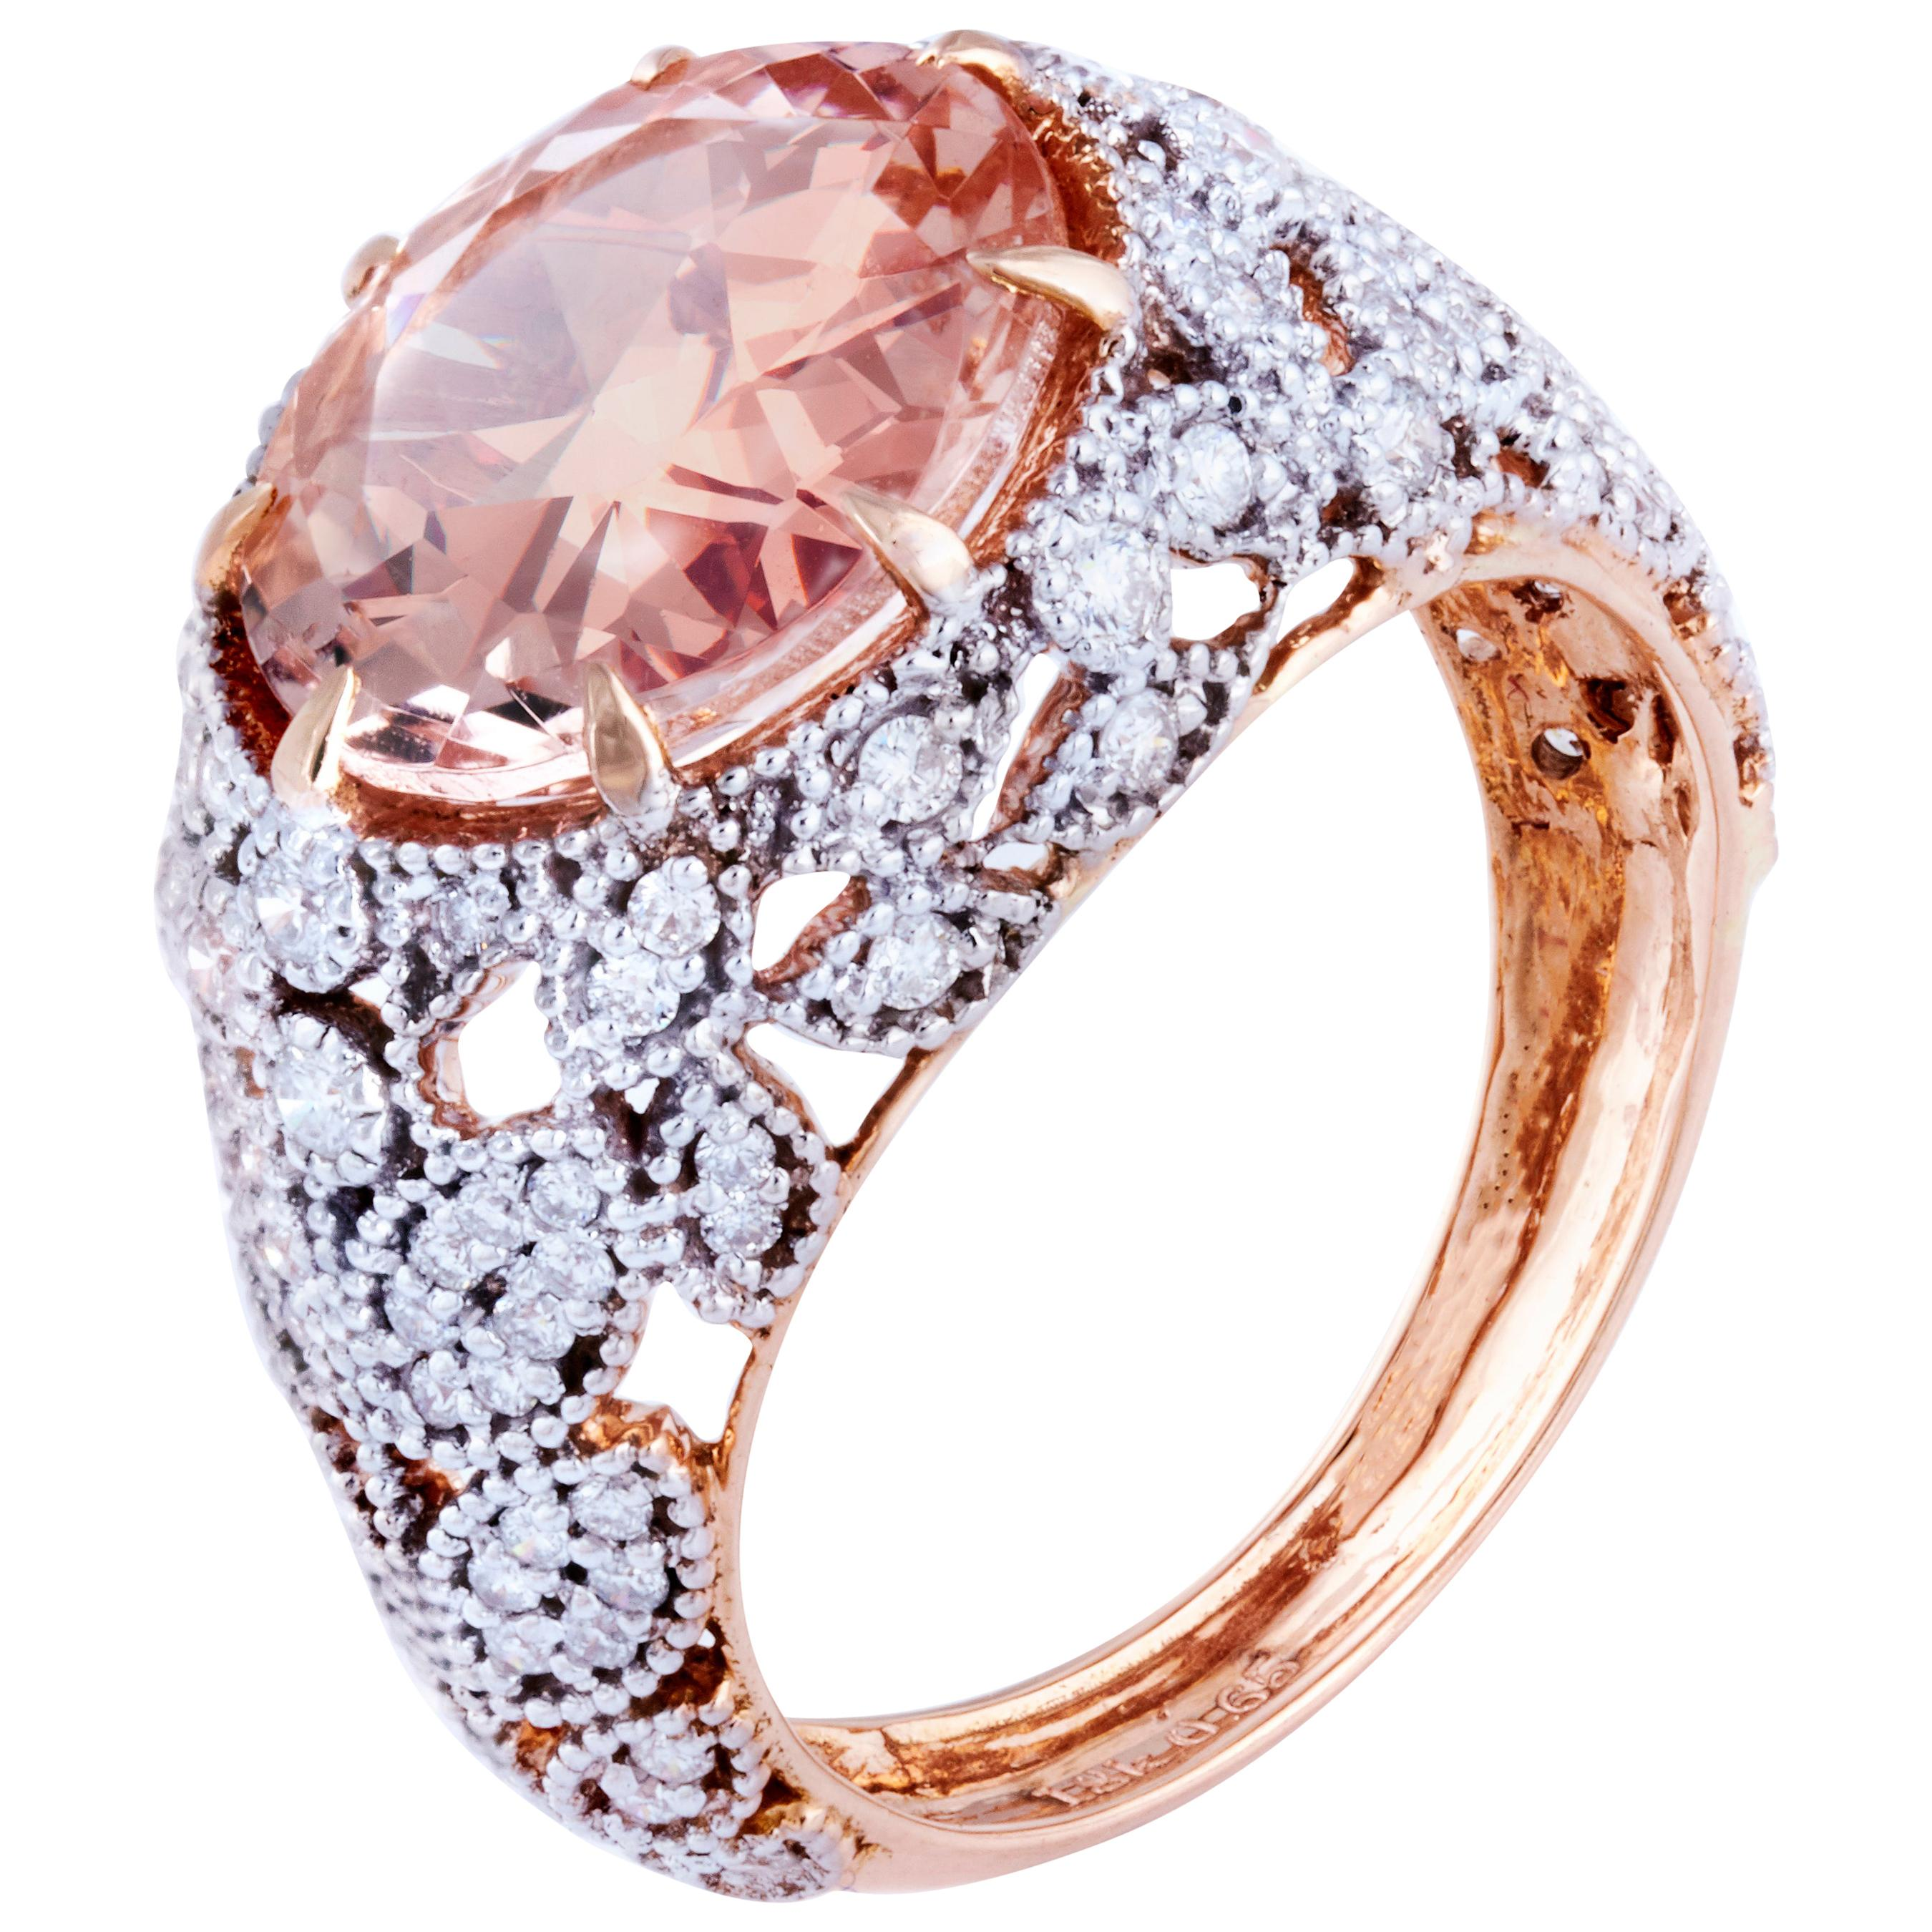 Morganite Diamond Fashion Ring Set in 18 Karat Rose Gold 'VS/G Diamonds'